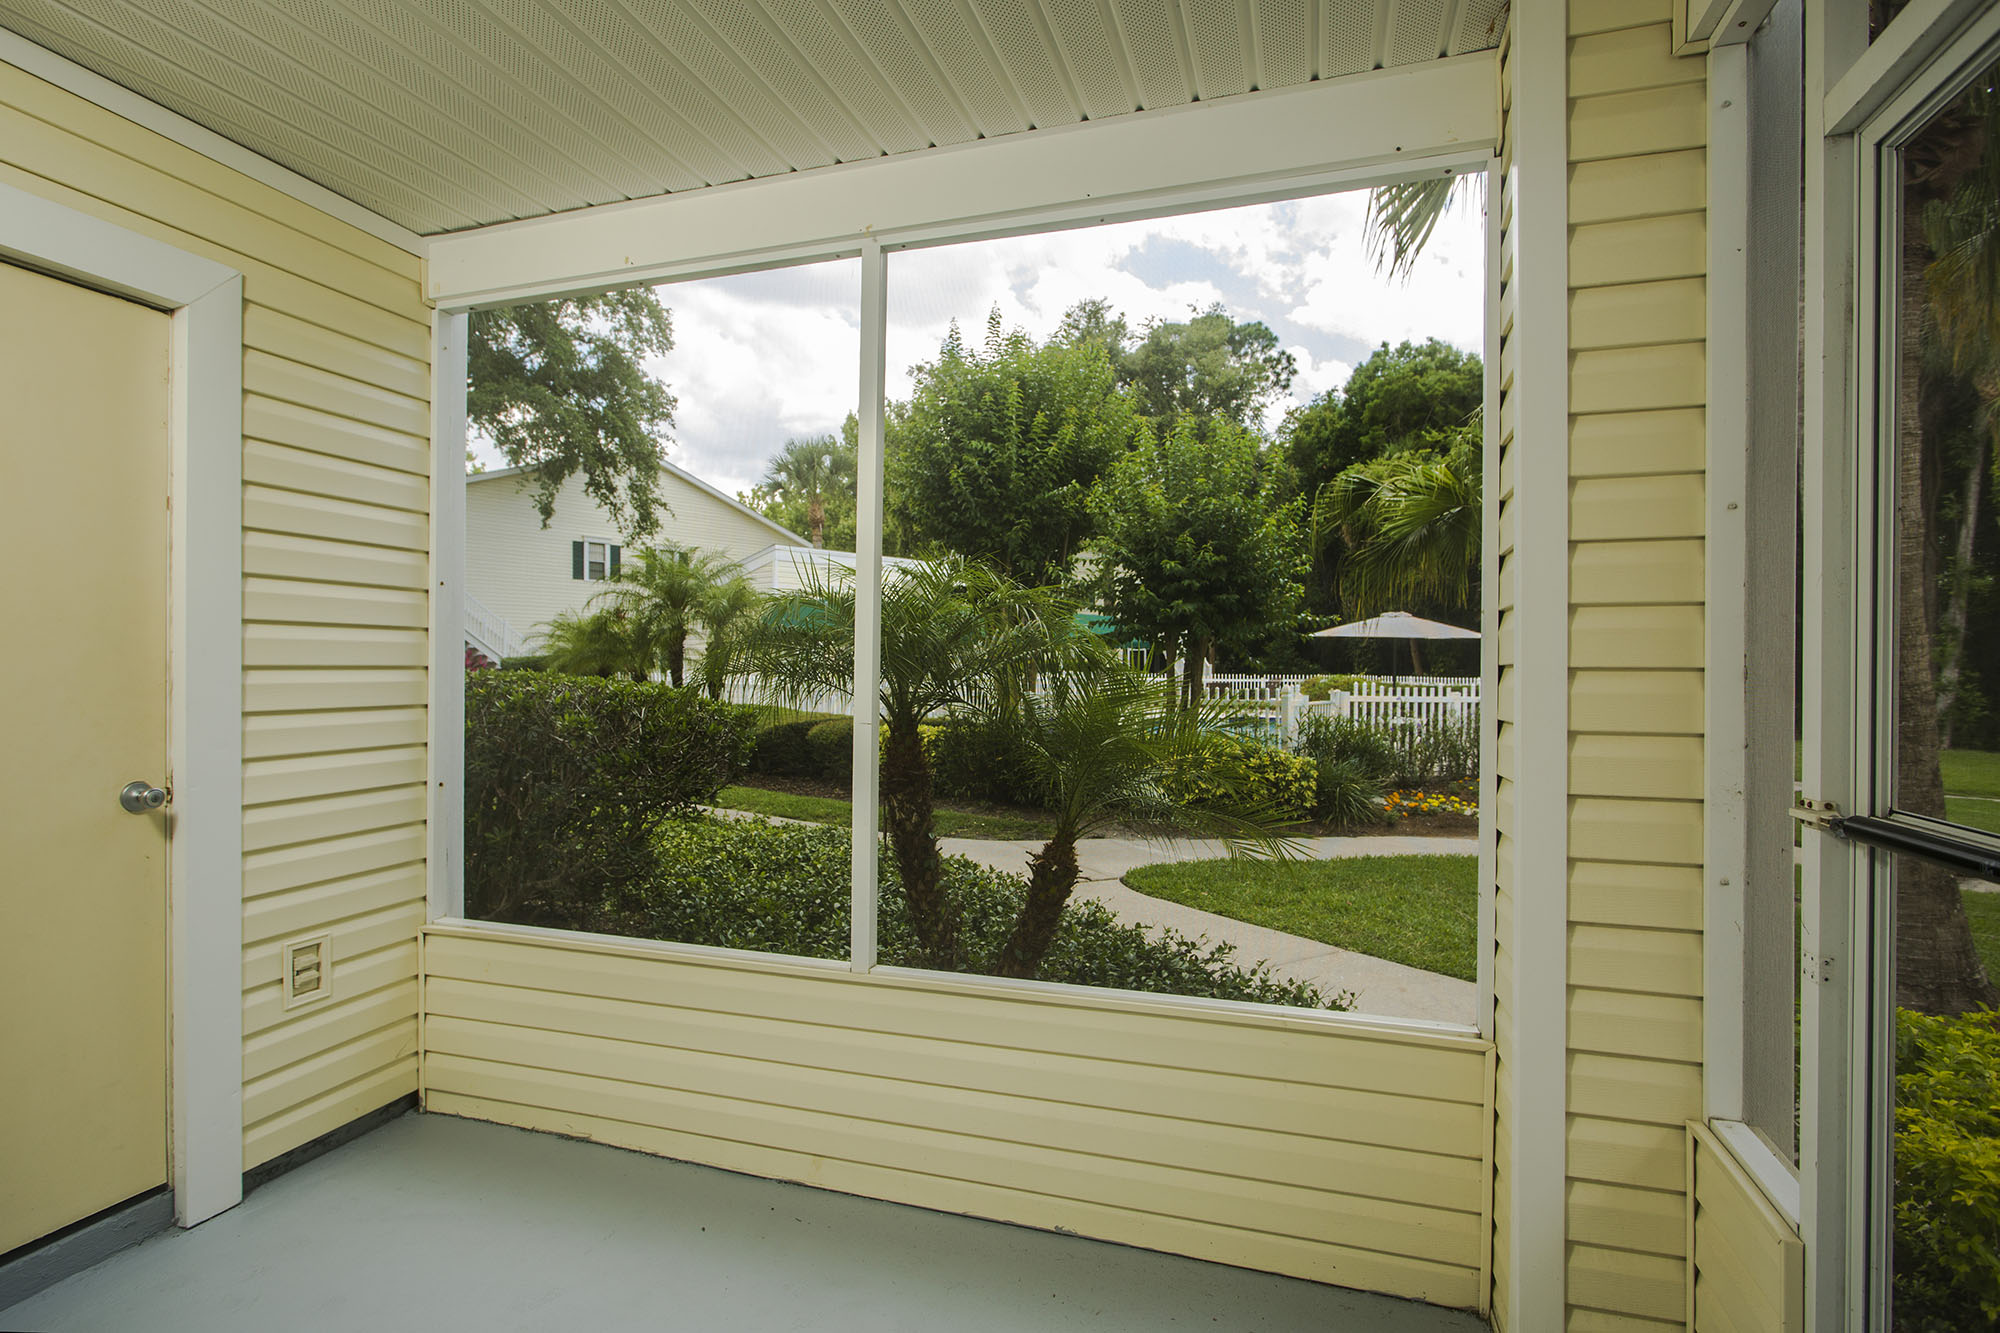 tampa-port_richey-apartment-one-bedroom-rental-two-interior-1.jpg